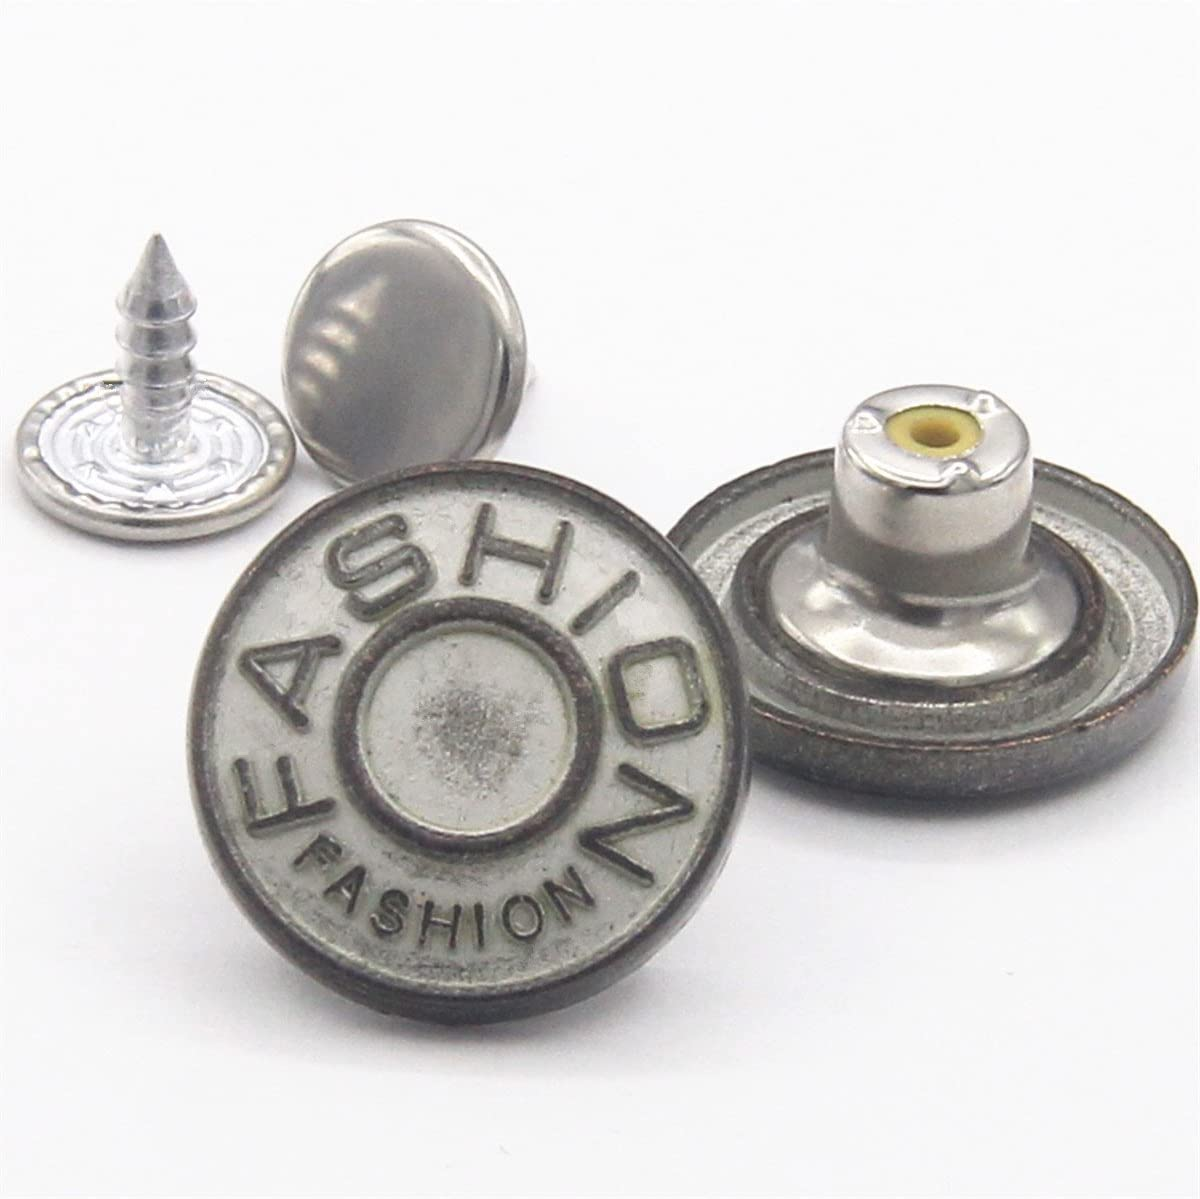 Flying Horse66 20mm GHQ Jeans Button Tack Jacket Buttons Metal Replacement Kit 12 Set